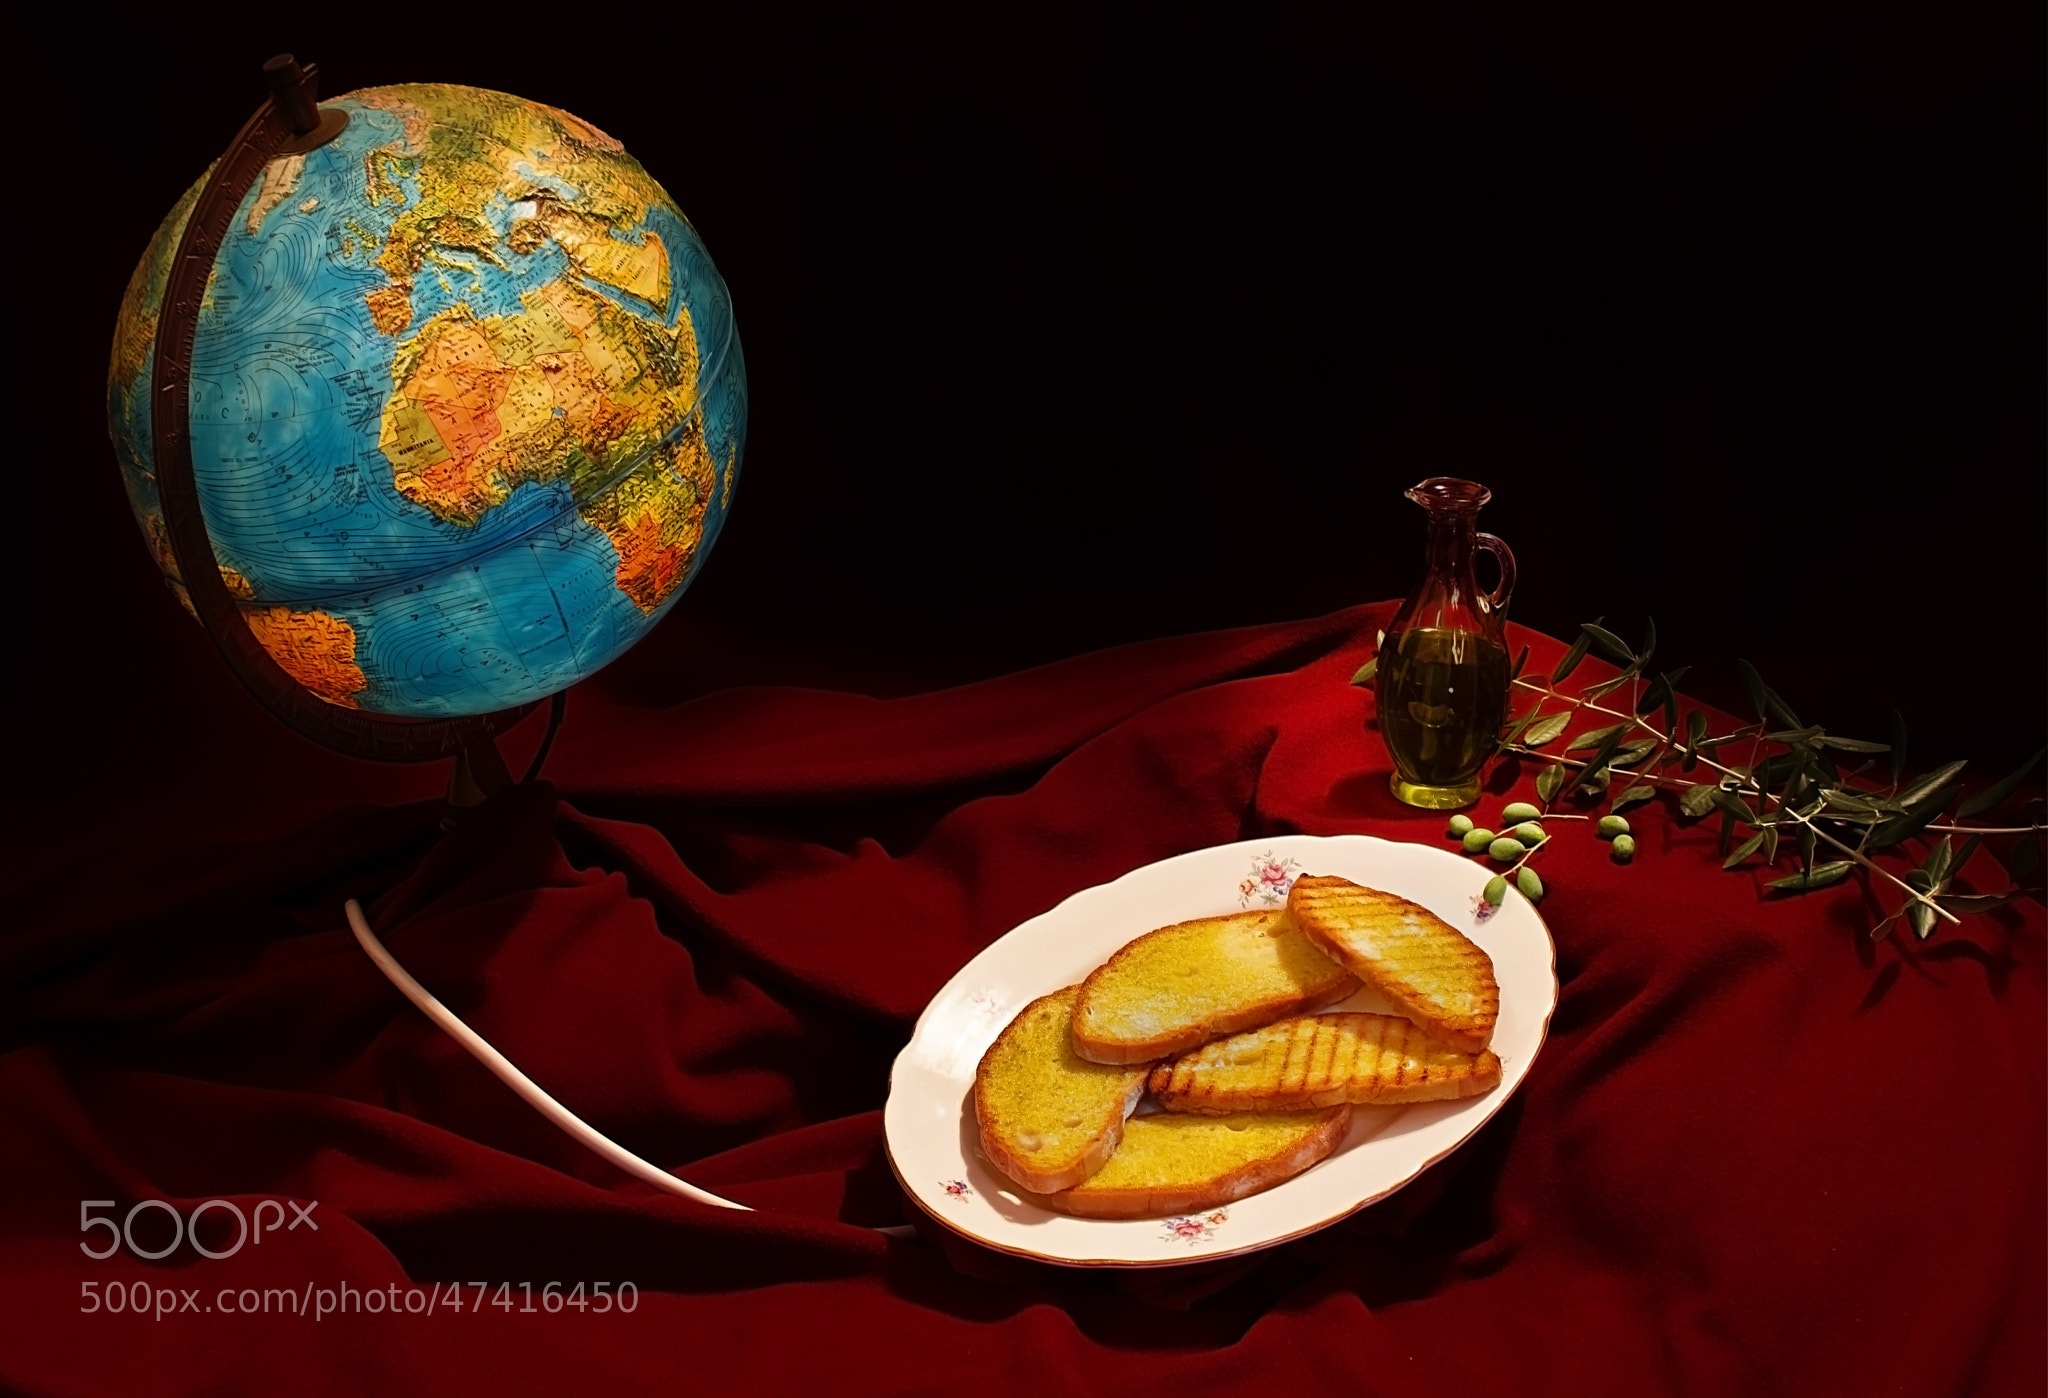 Photograph Cibo energia per il pianeta - Food energy for the planet by FedericoPH  on 500px